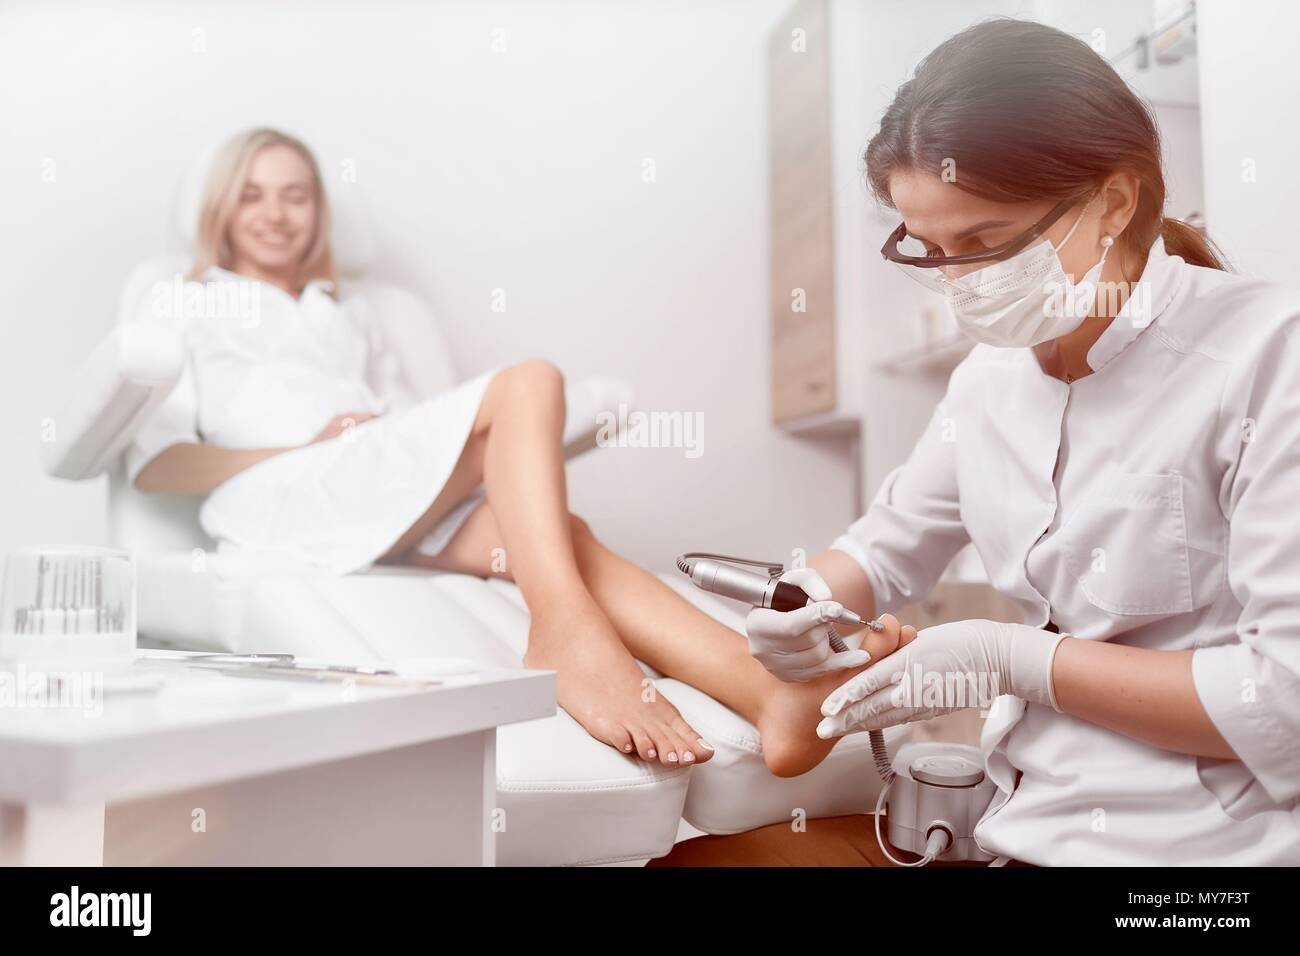 Front view of podiatrist making procedure of grinding for clients feet, cleaning from callus. Happy woman smiling and relaxing in beauty salon. Doctor - Stock Image